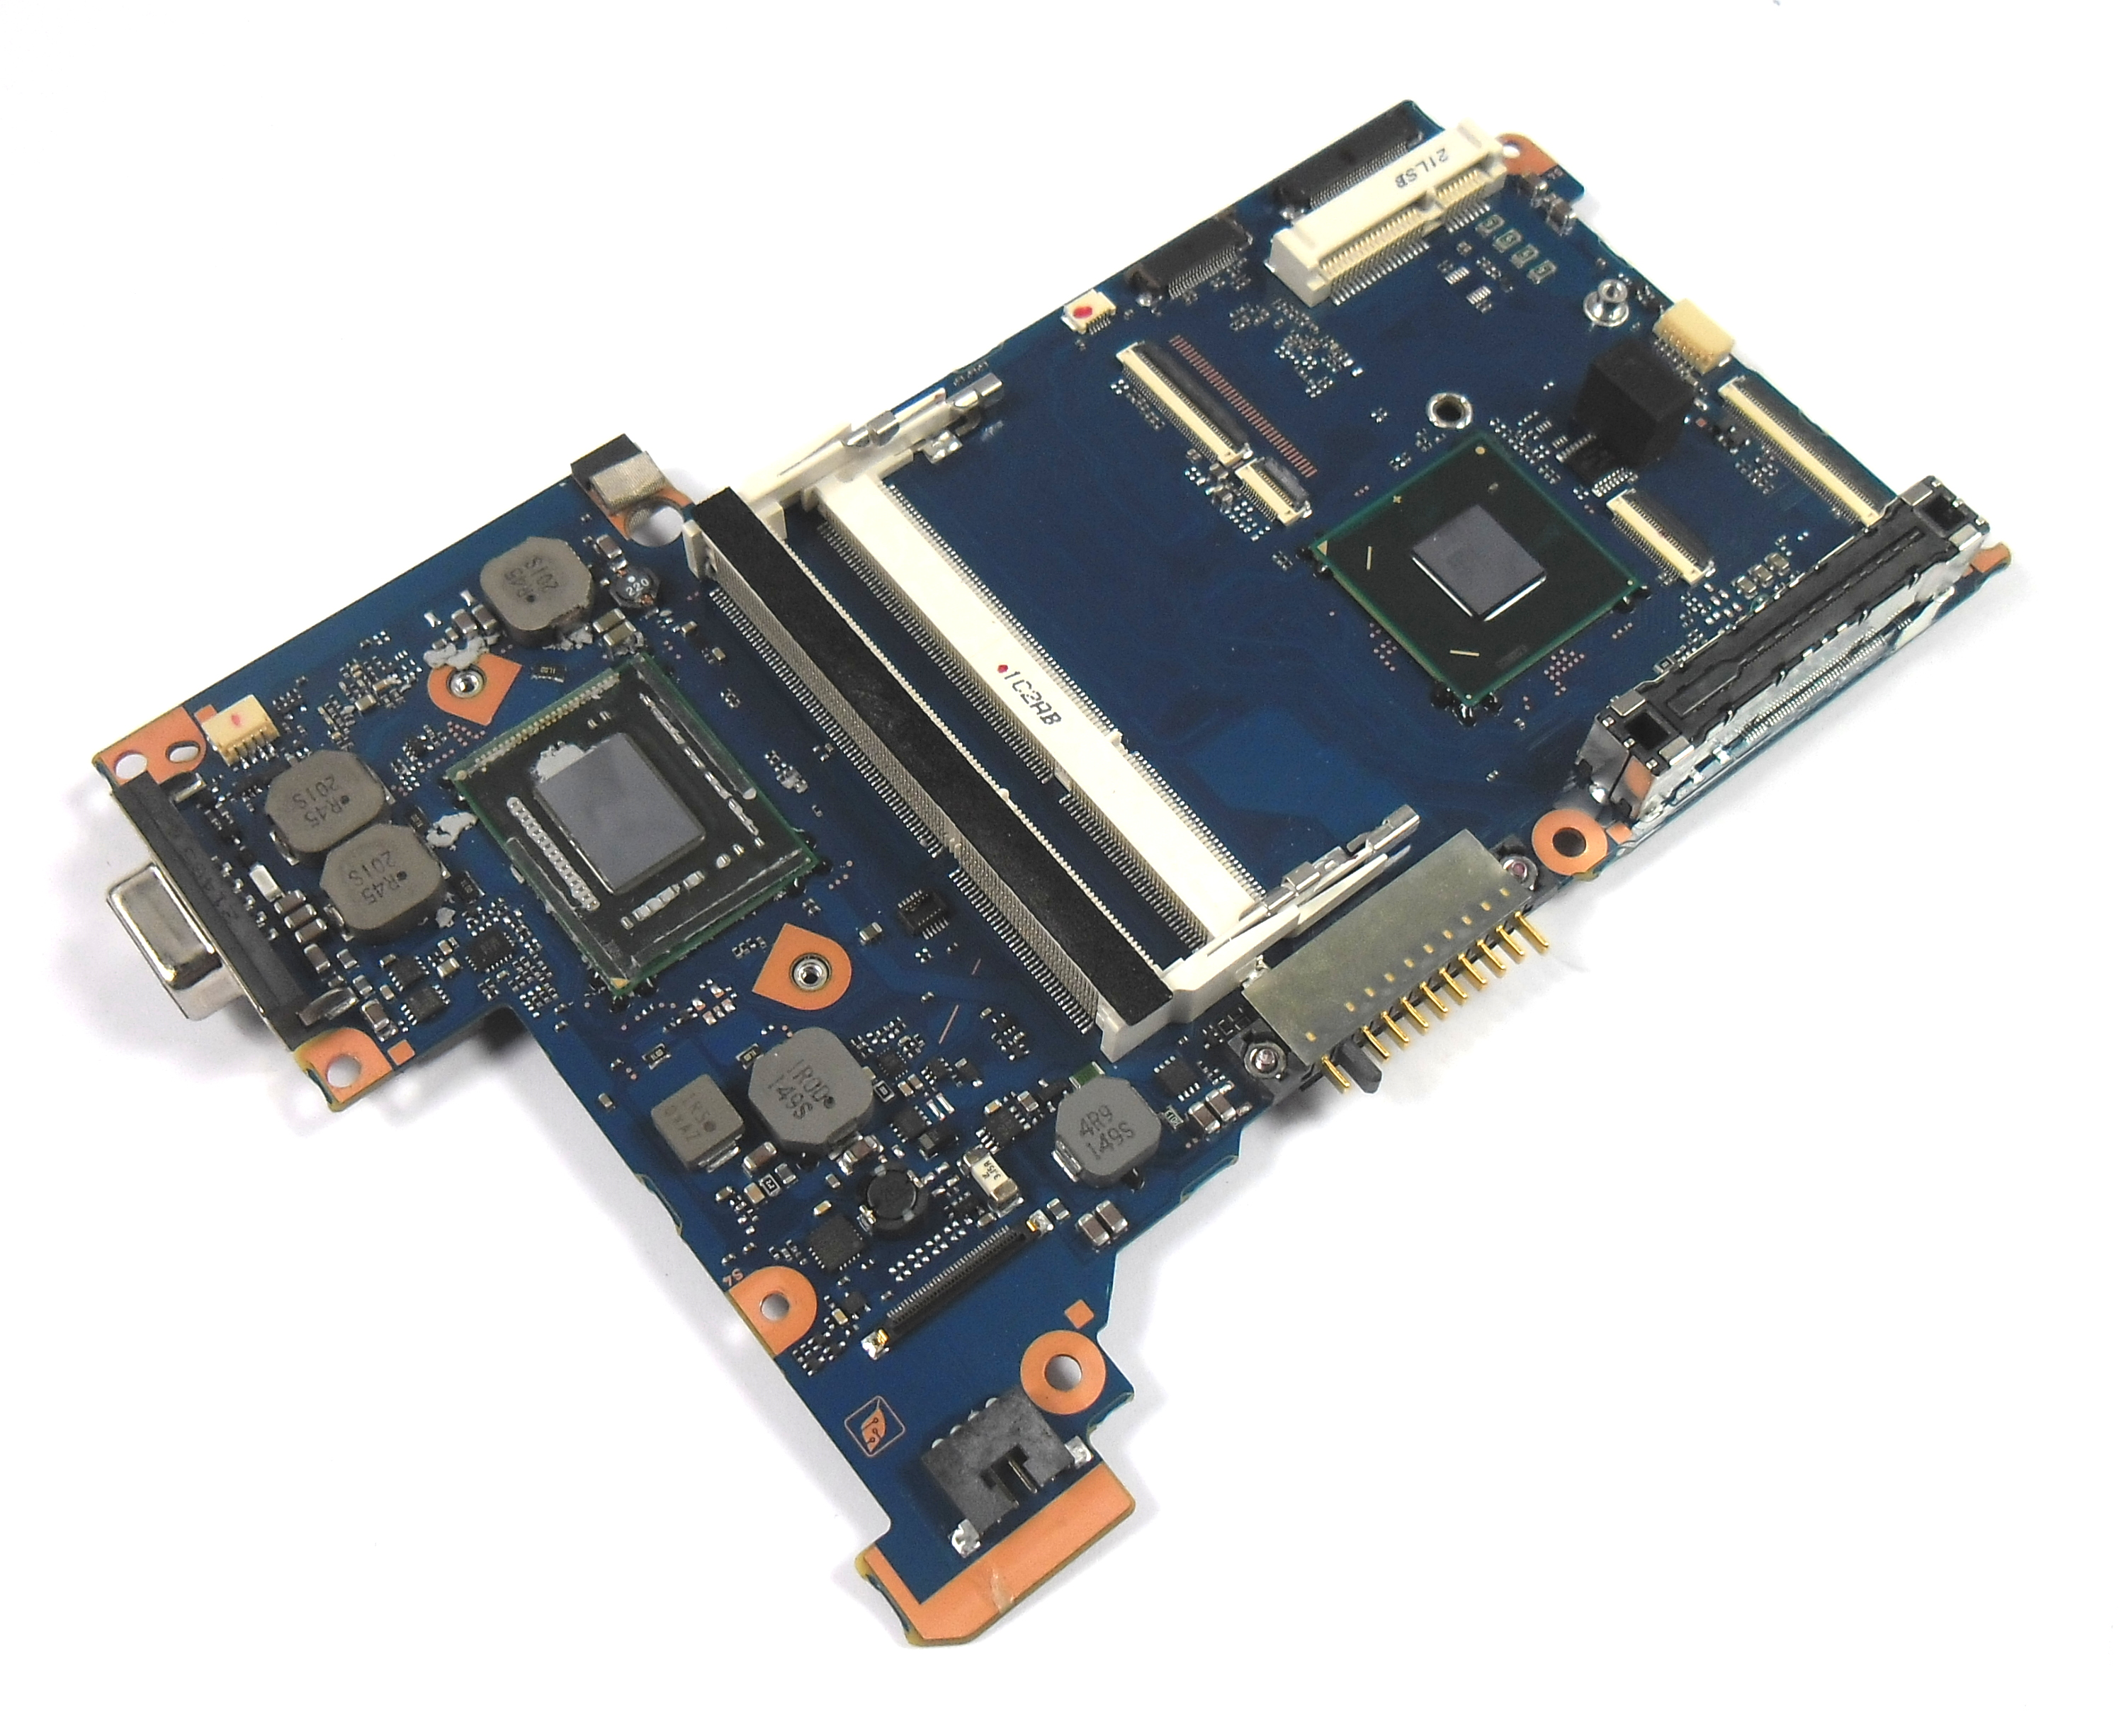 Toshiba FAL3SY3 Portege R830 Laptop Motherboard with Intel i5-2435M Processor